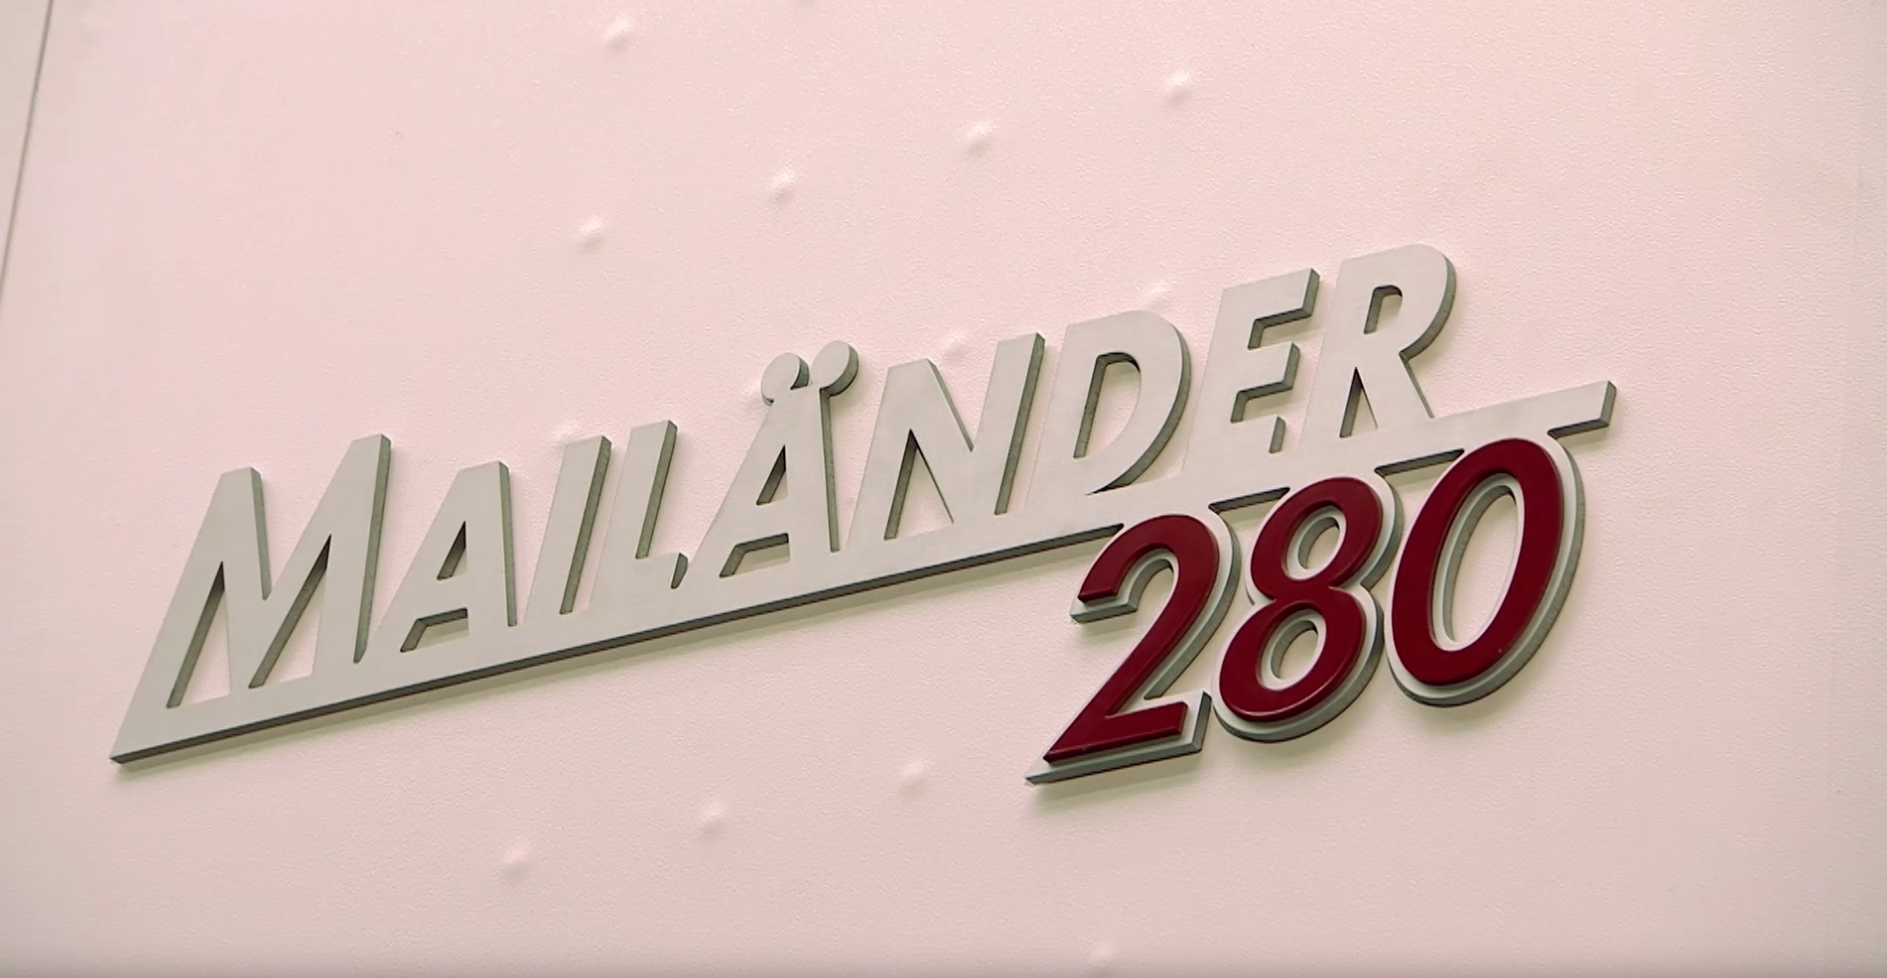 Mailänder 280 technical interview